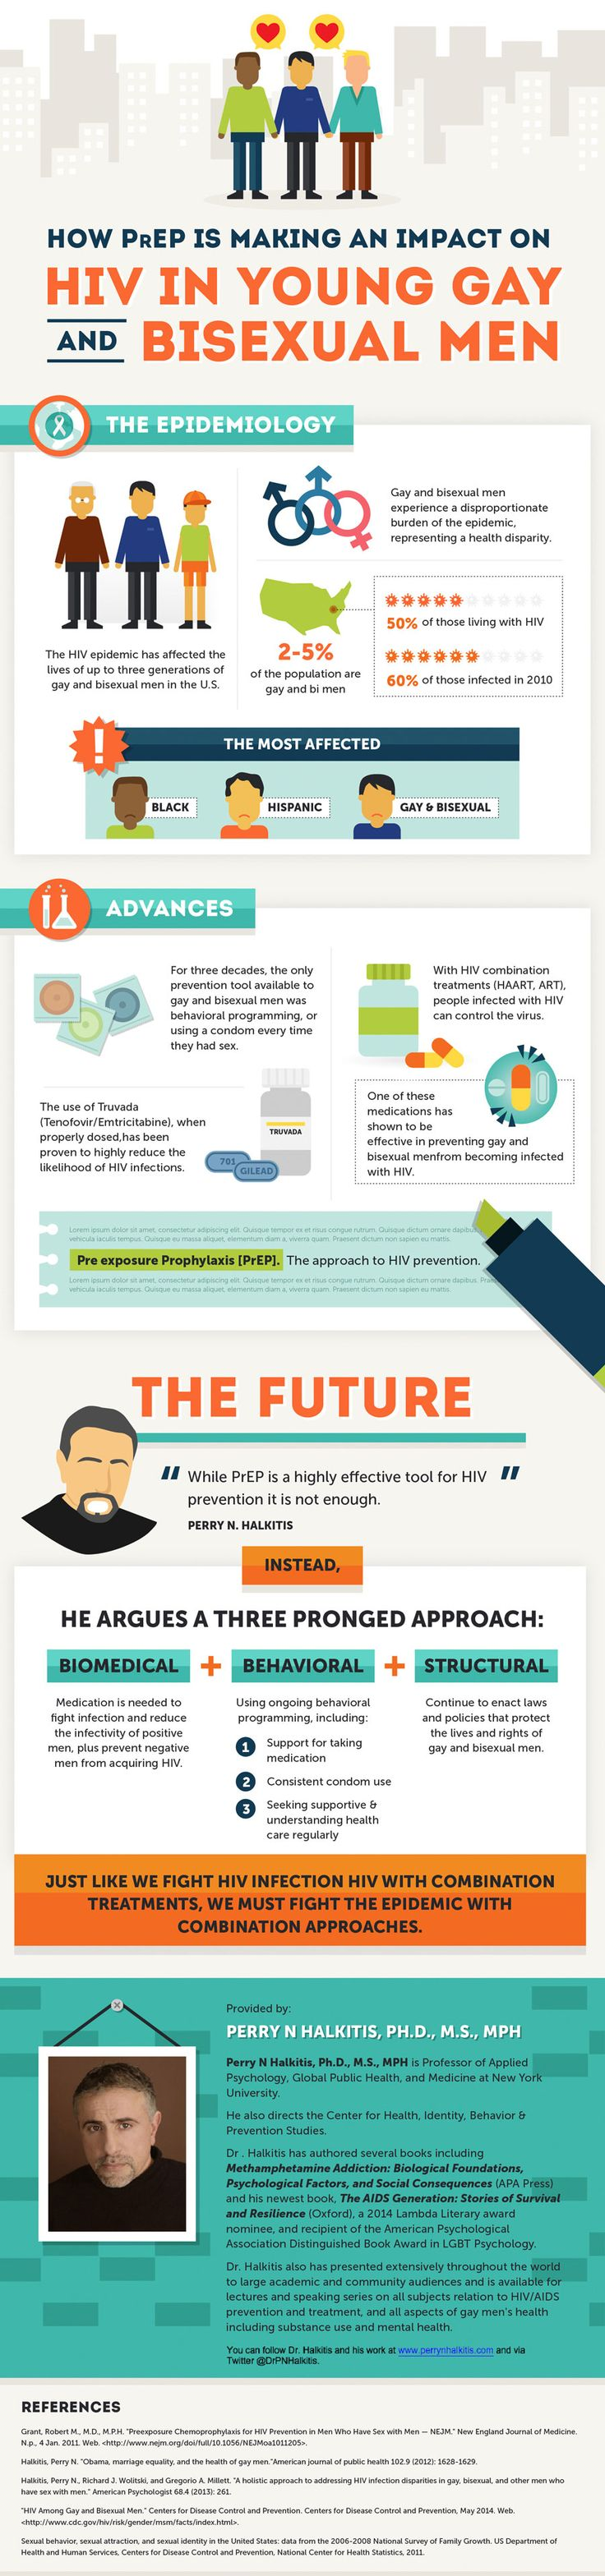 How PrEP Is Making An Impact On HIV In Young Gay and Bisexual Men #infographic #Gay #HIV #Health